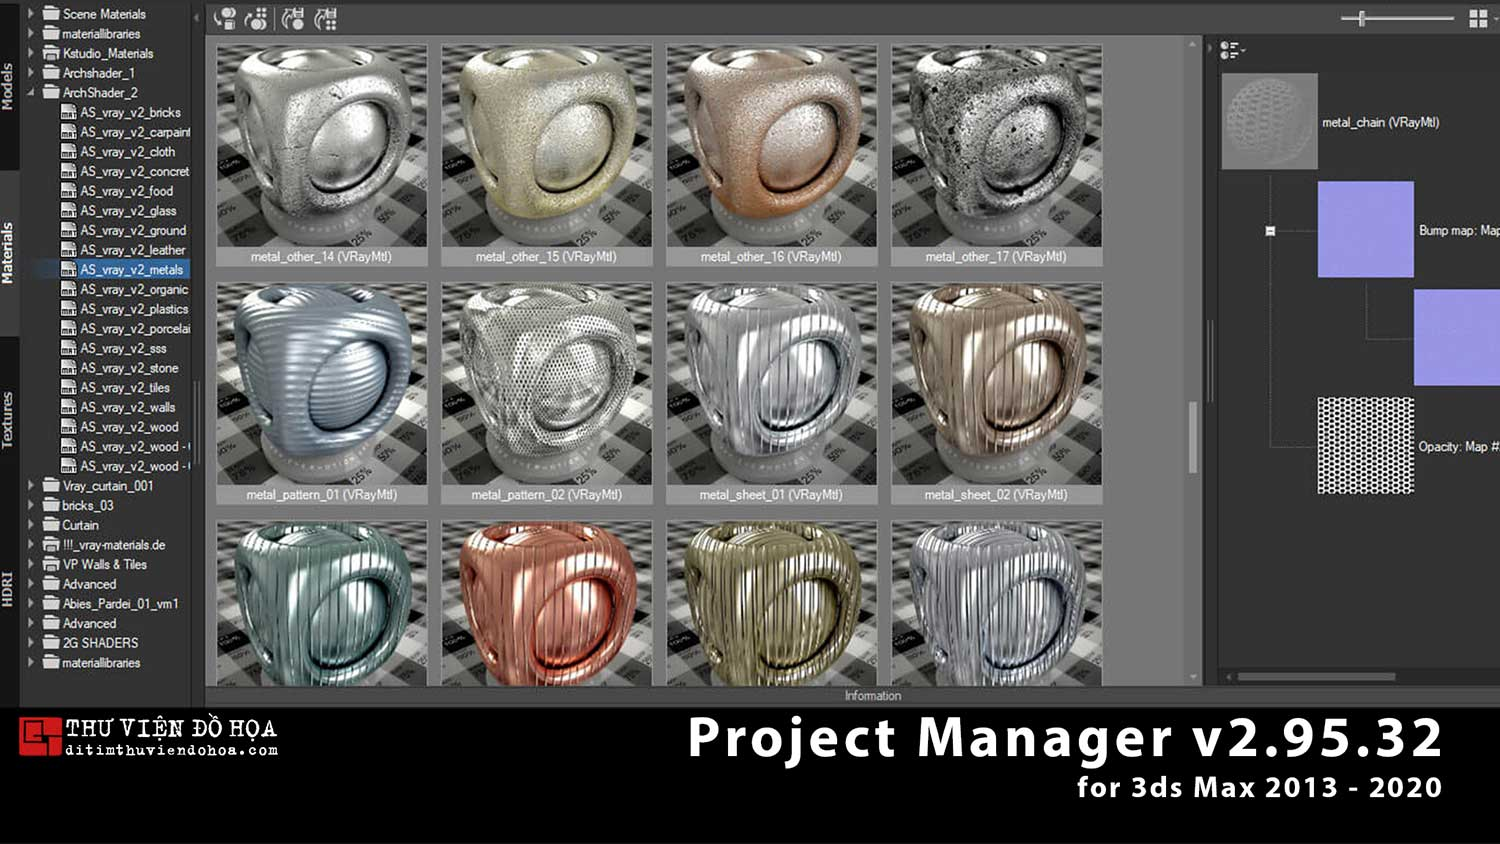 [ Plugins-3dsmax ] Project Manager v2.95.32 for 3ds Max 2013-2020